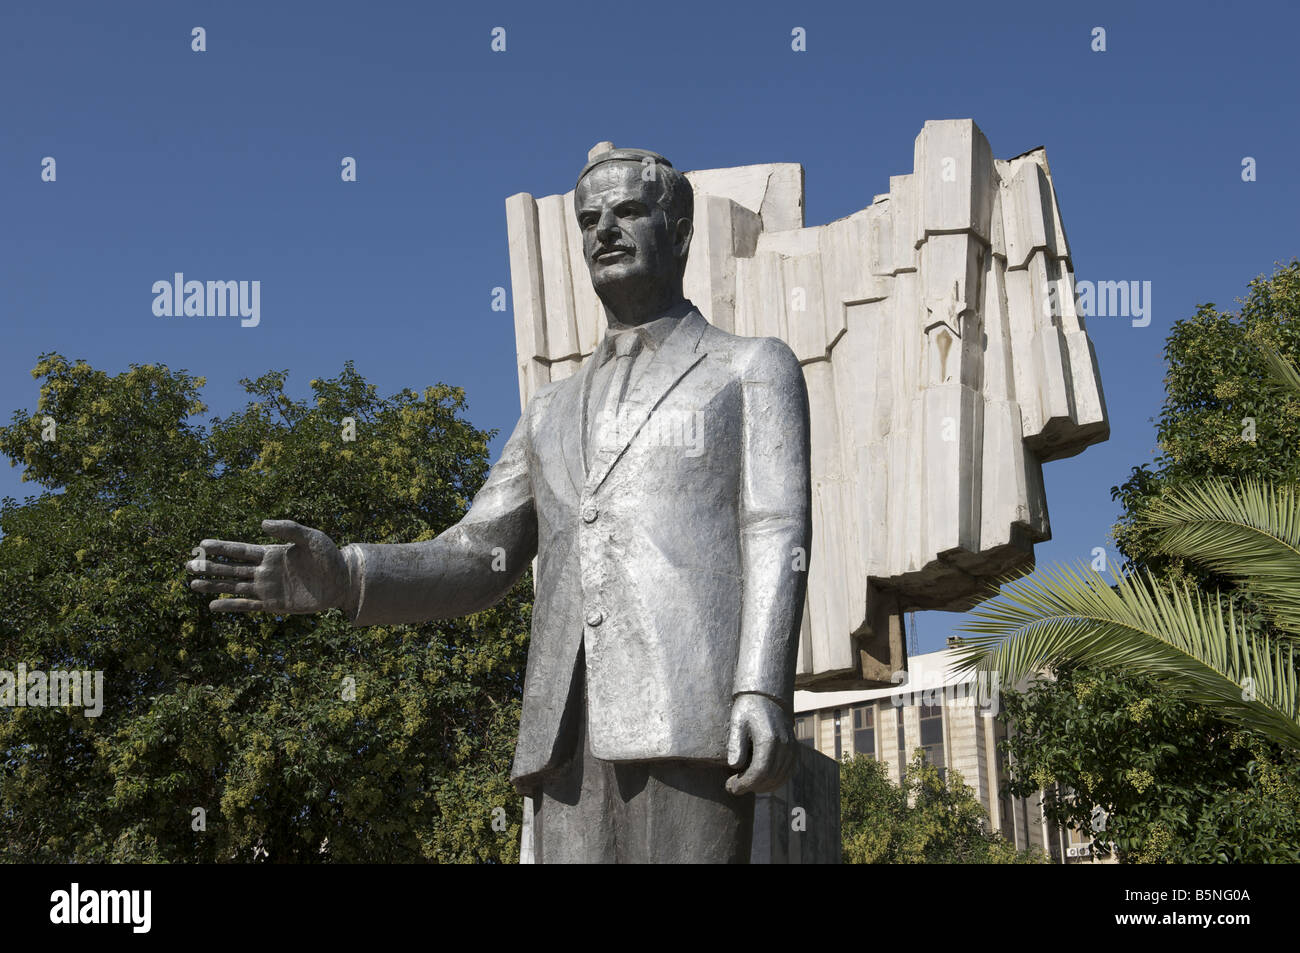 Statue of Hafez al Assad late President of Syria - Stock Image